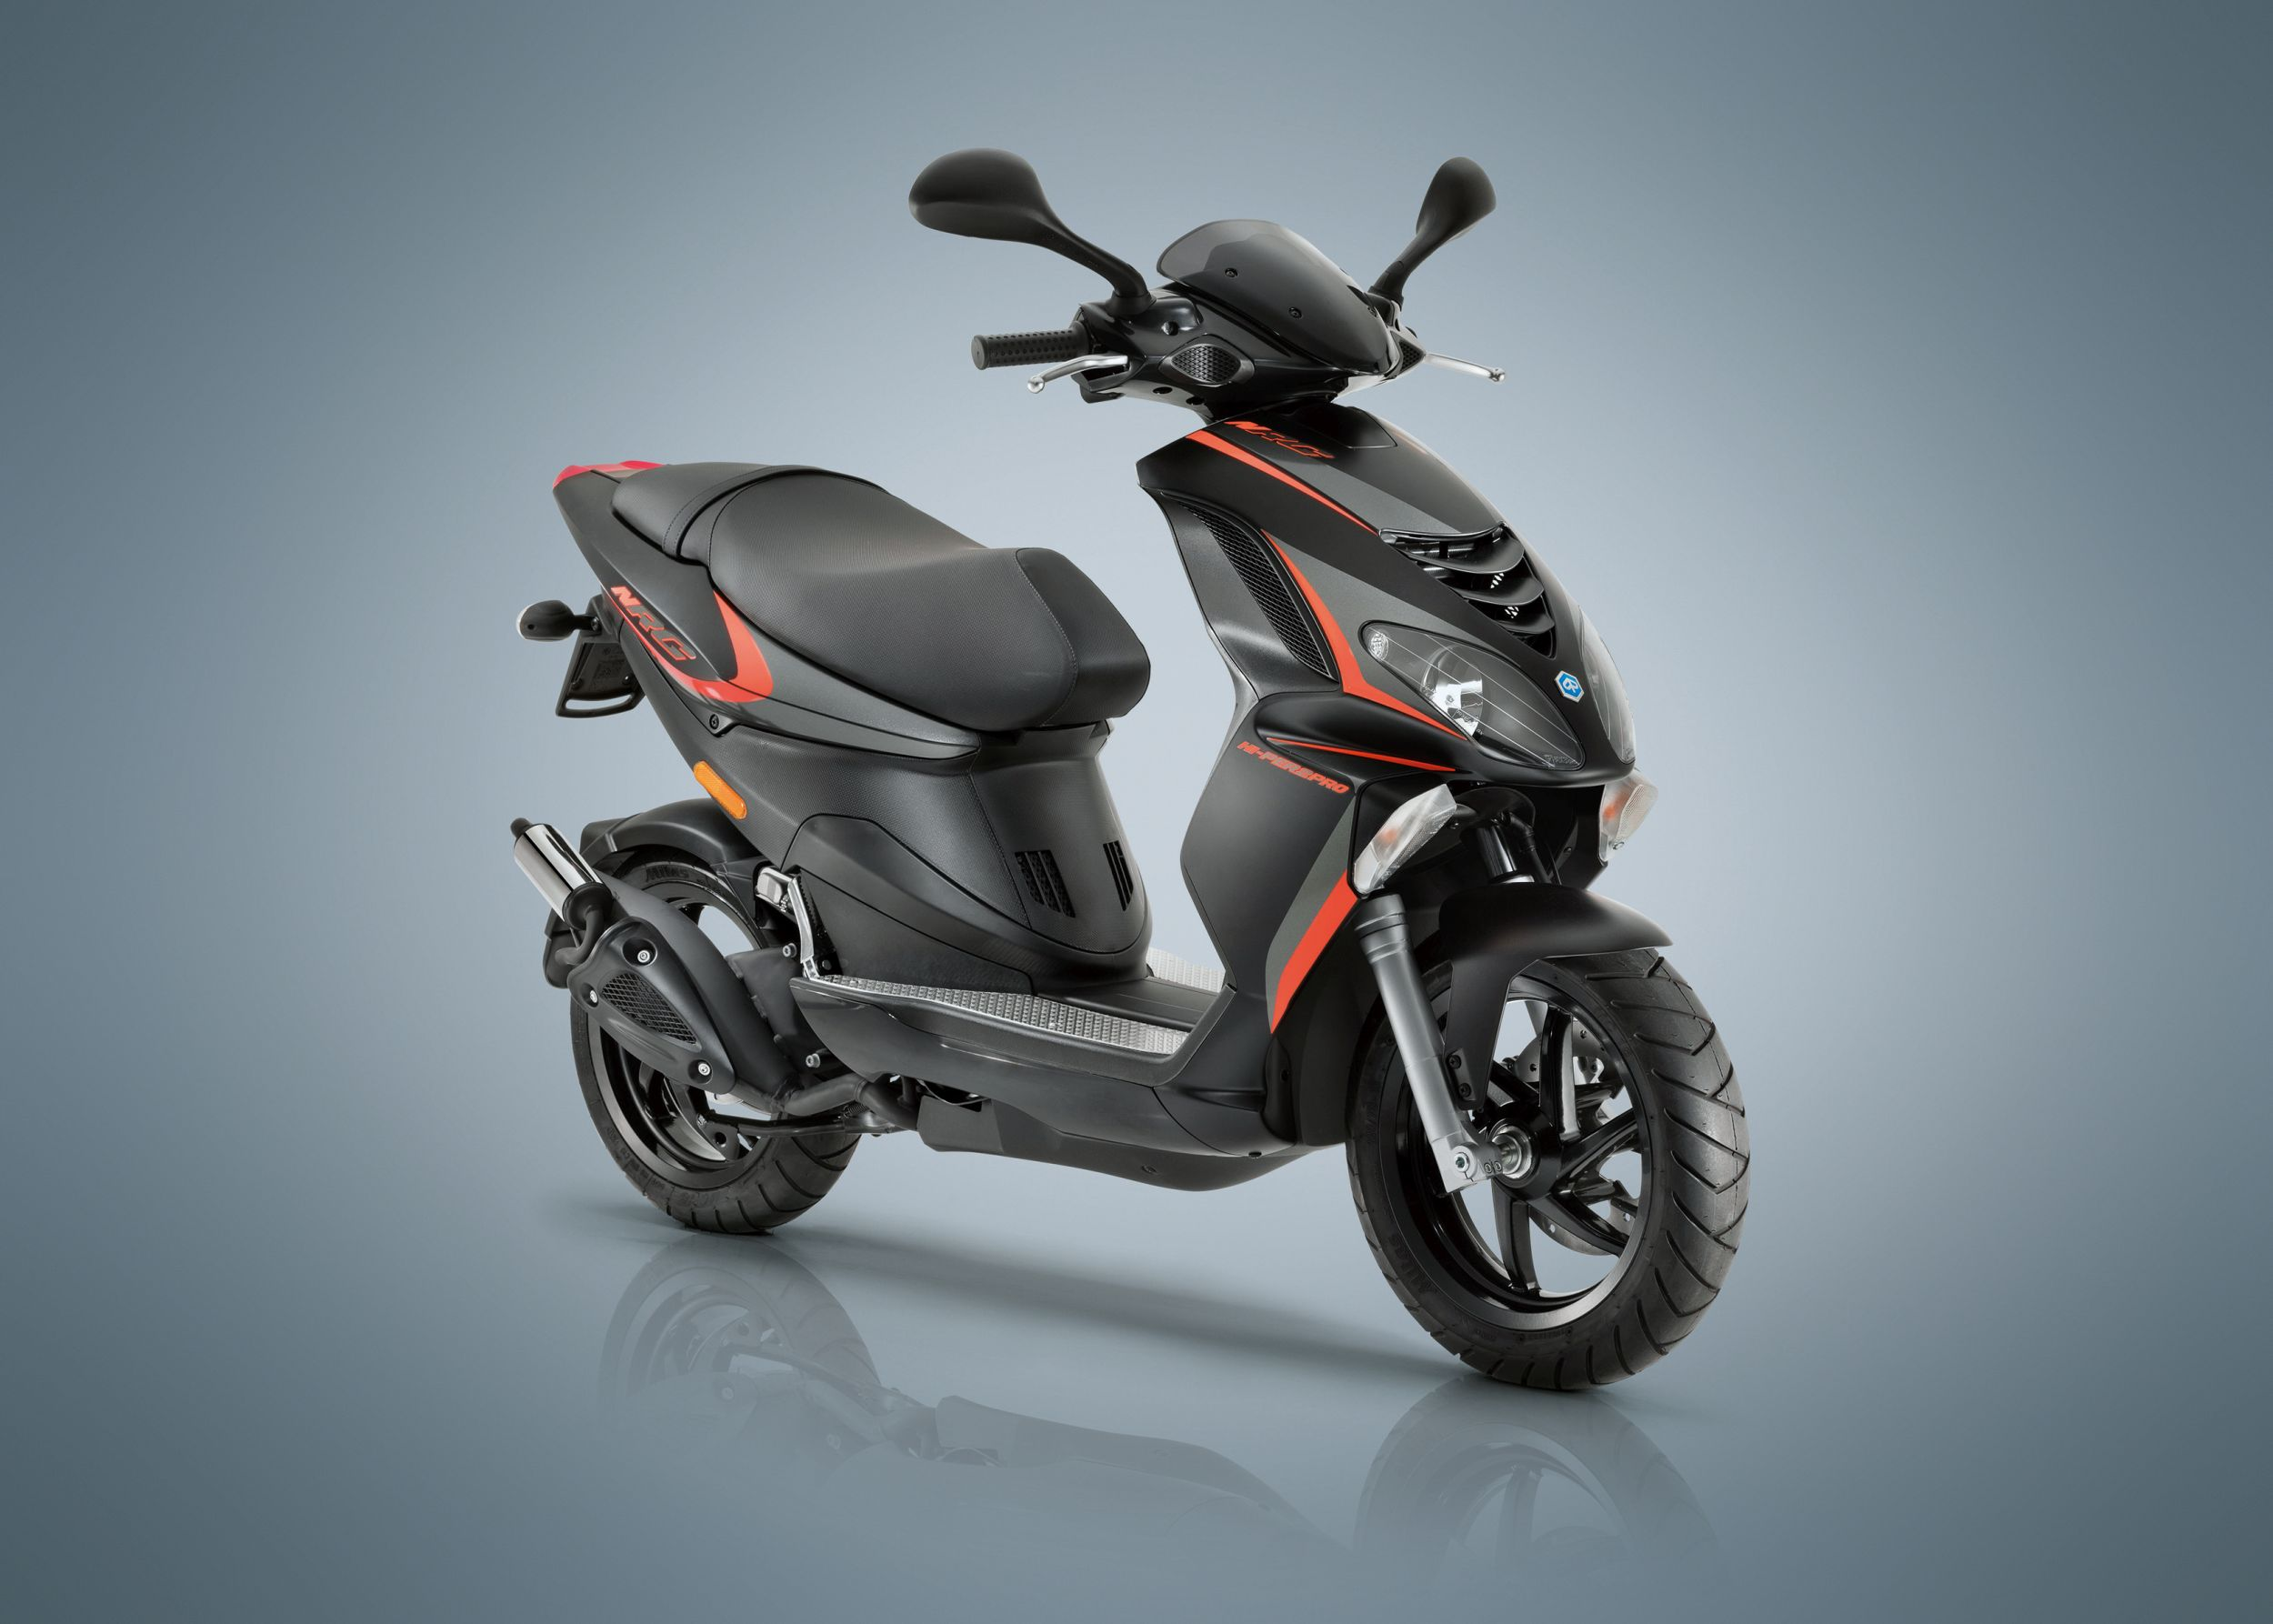 Piaggio Nrg Power 50 Dd 2t All Technical Data Of The